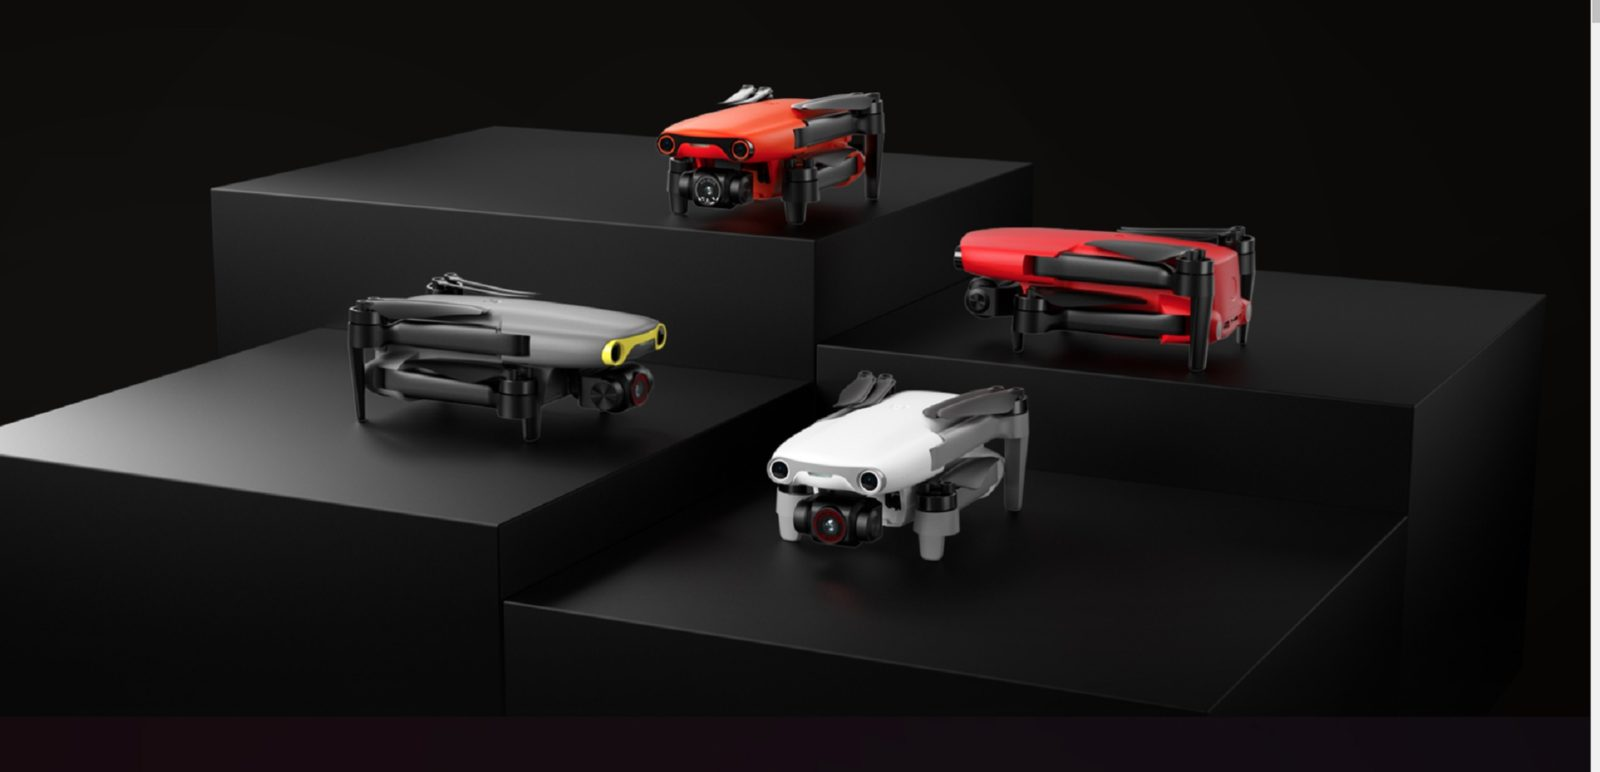 new-evo-nano-drone-from-autel-weighs-as-much-as-an-orange-and-fits-in-your-palm